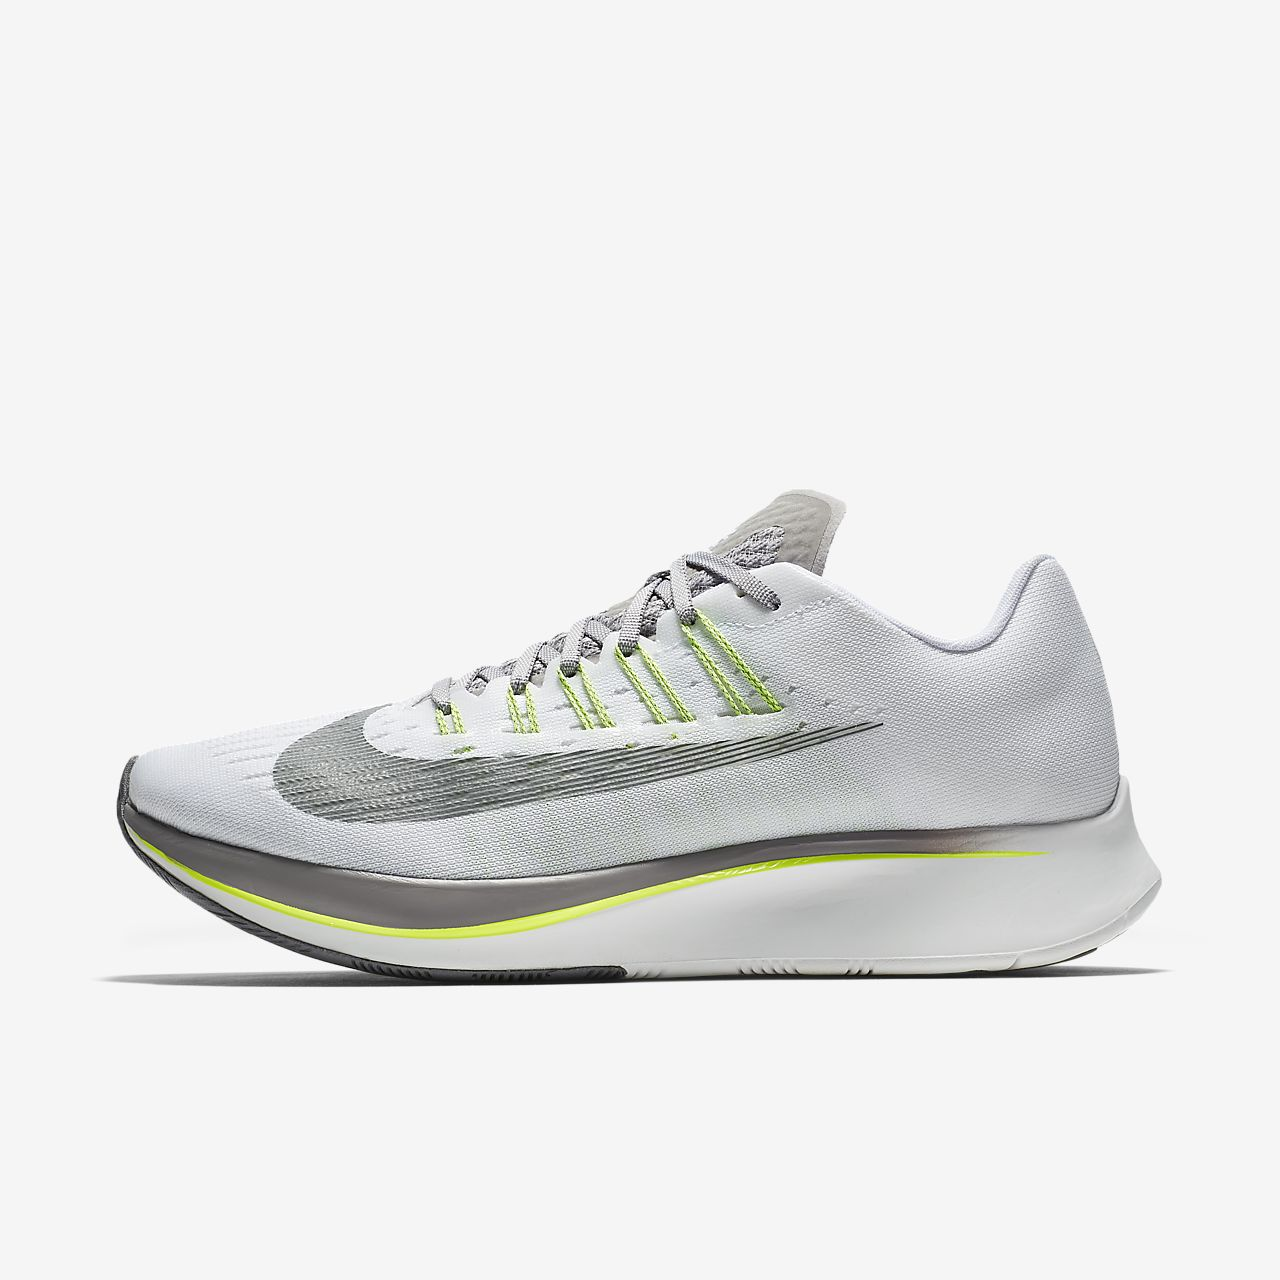 0205ce91ebfd52 Nike Zoom Fly Men s Running Shoe. Nike.com